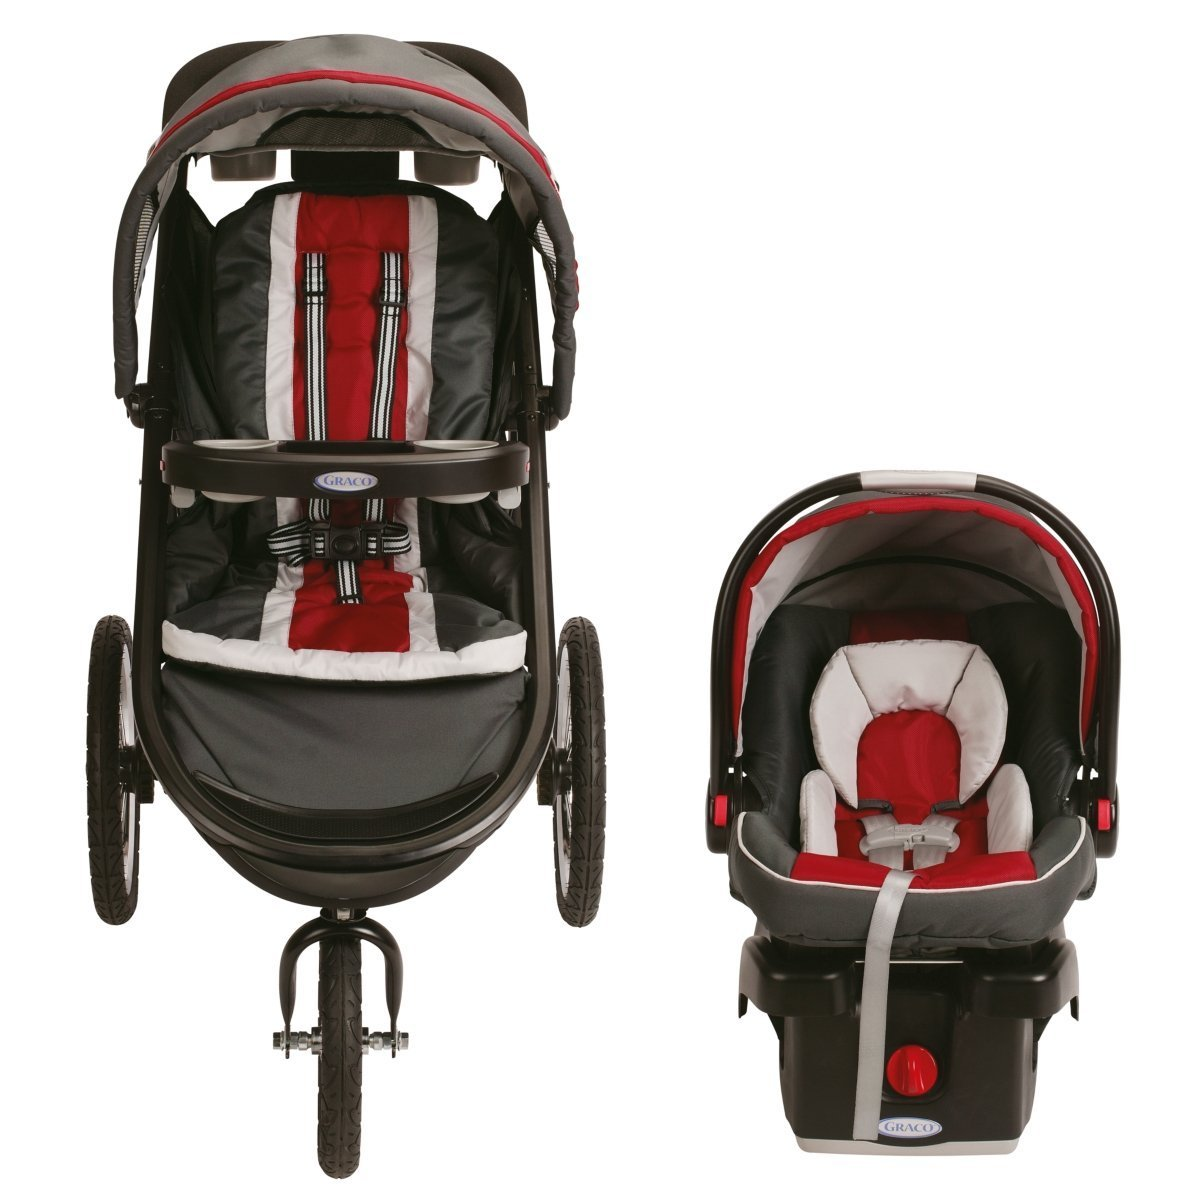 amazoncom  premium baby stroller and car seat combo trend  - amazoncom  premium baby stroller and car seat combo trend jogging pramtravel system graco snap n go jogger in modern style  baby